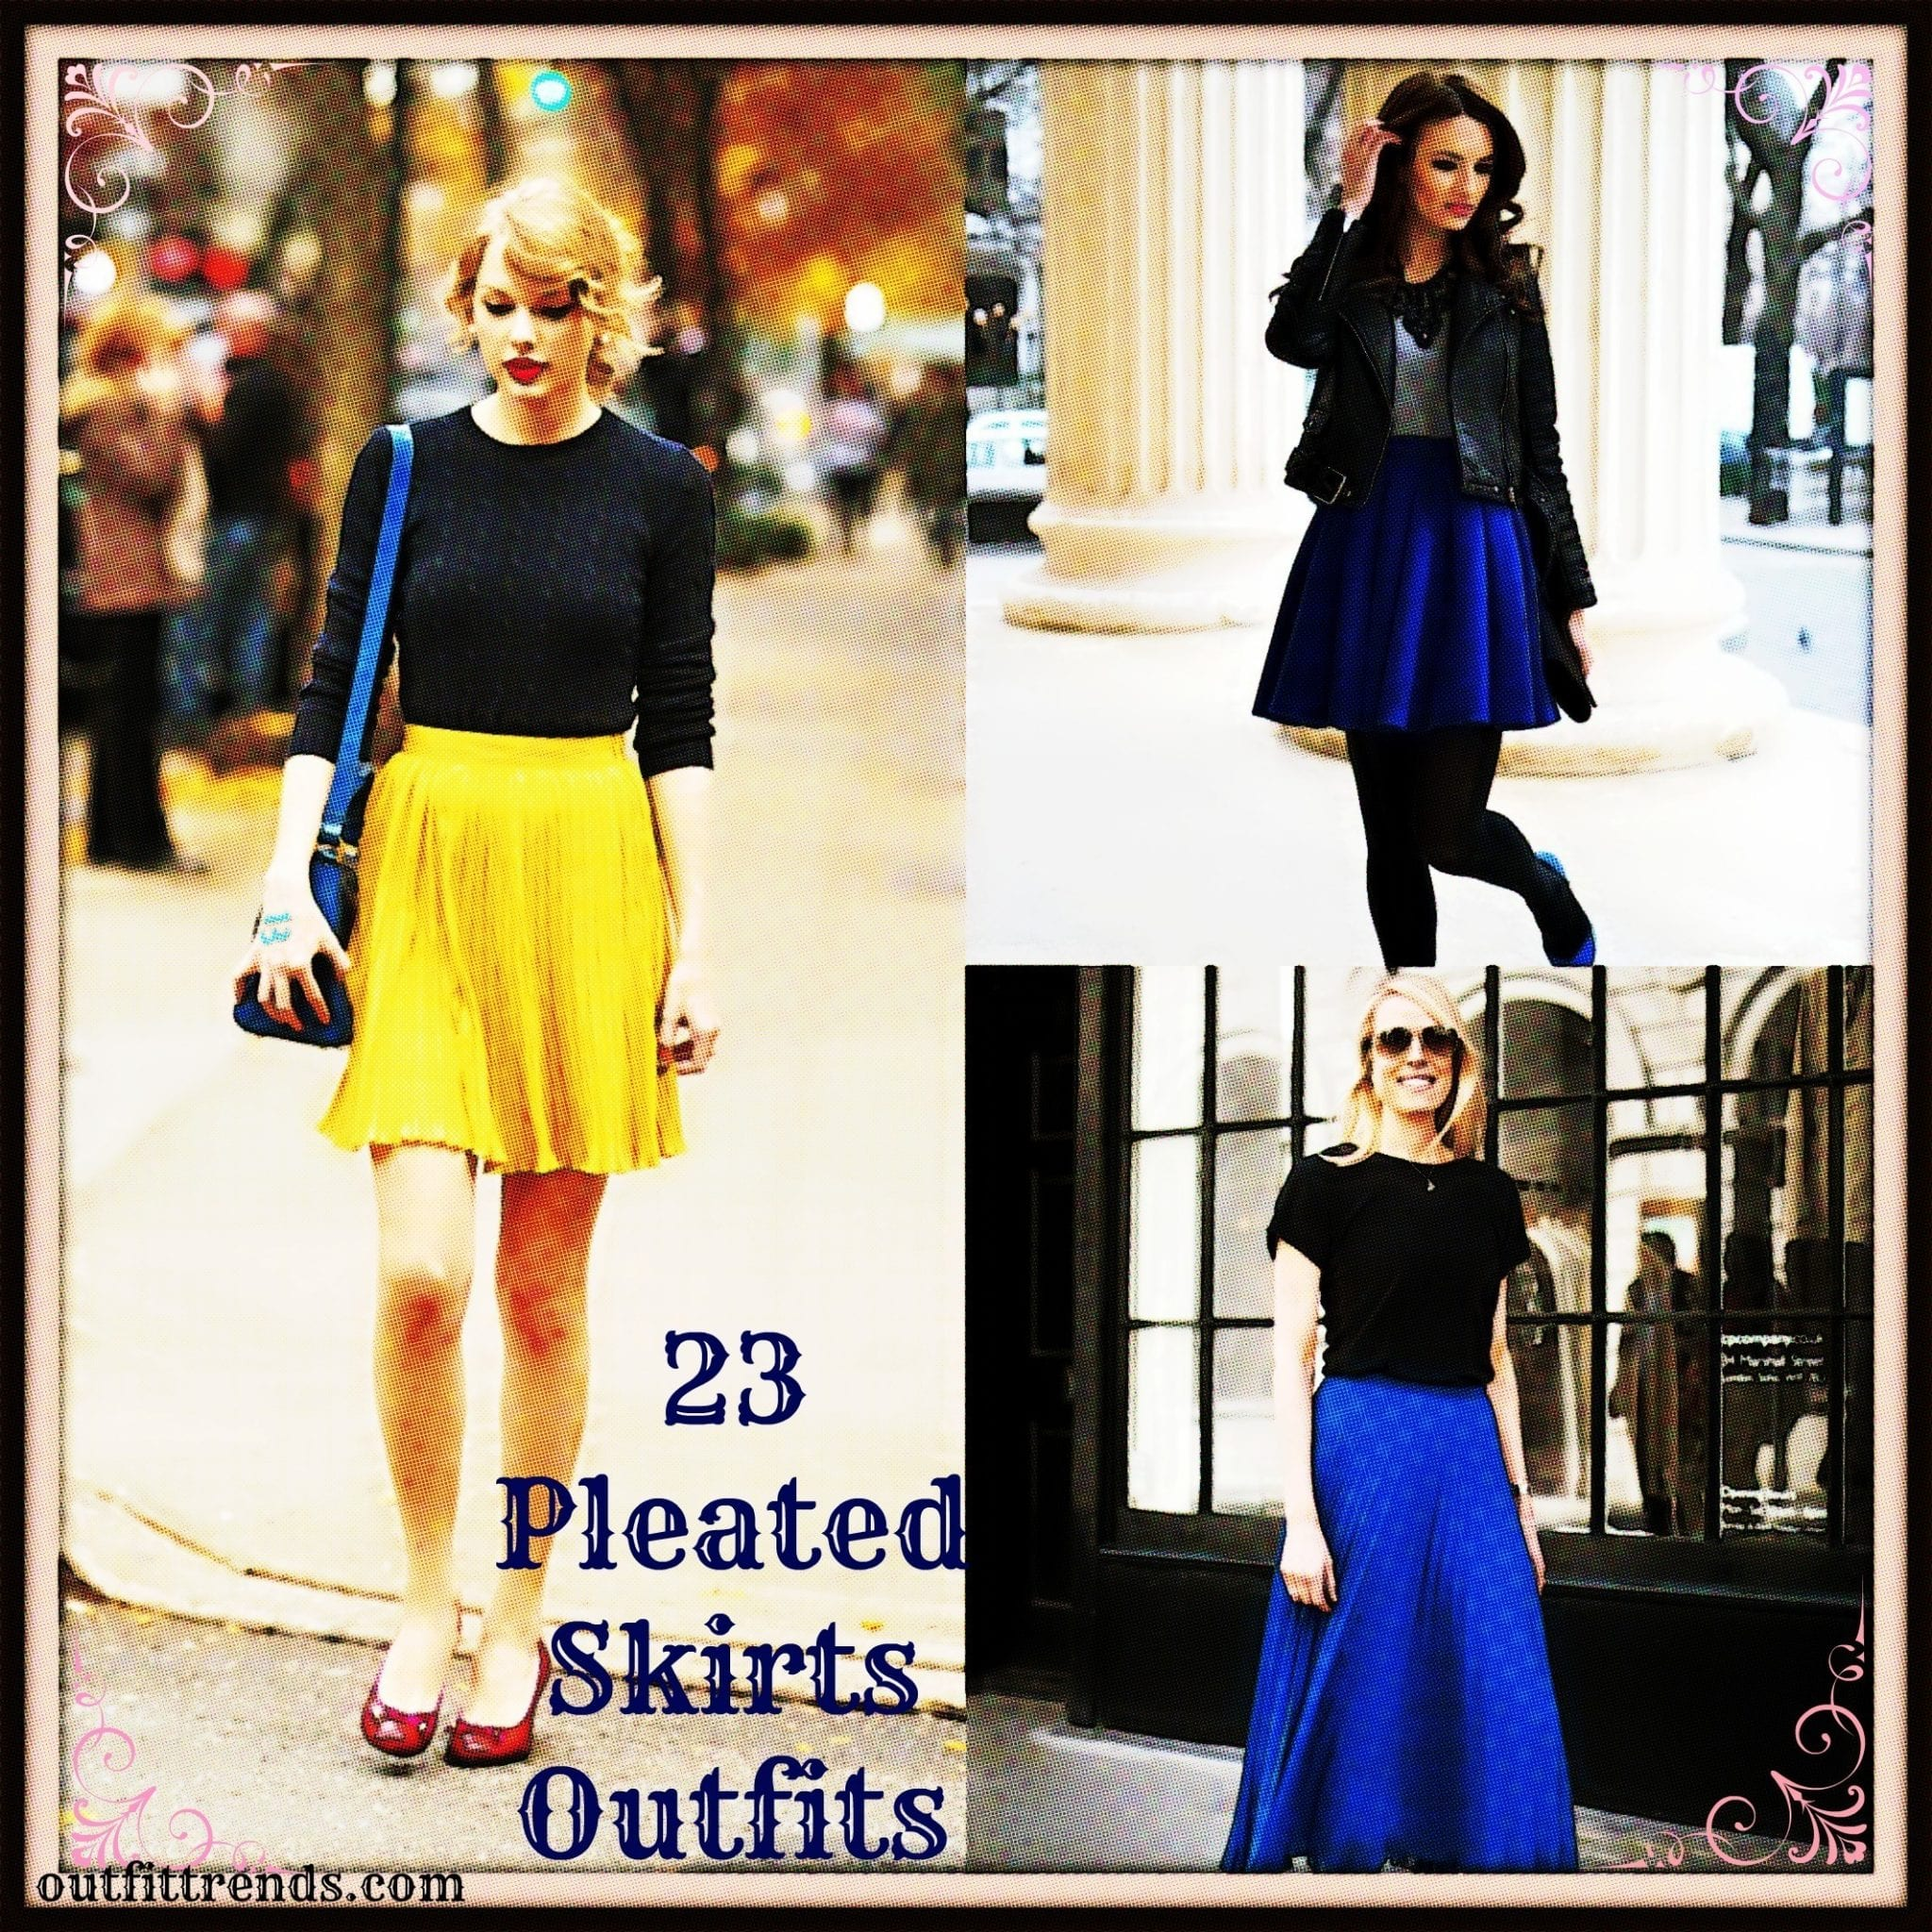 pleated skirts dresses (24)